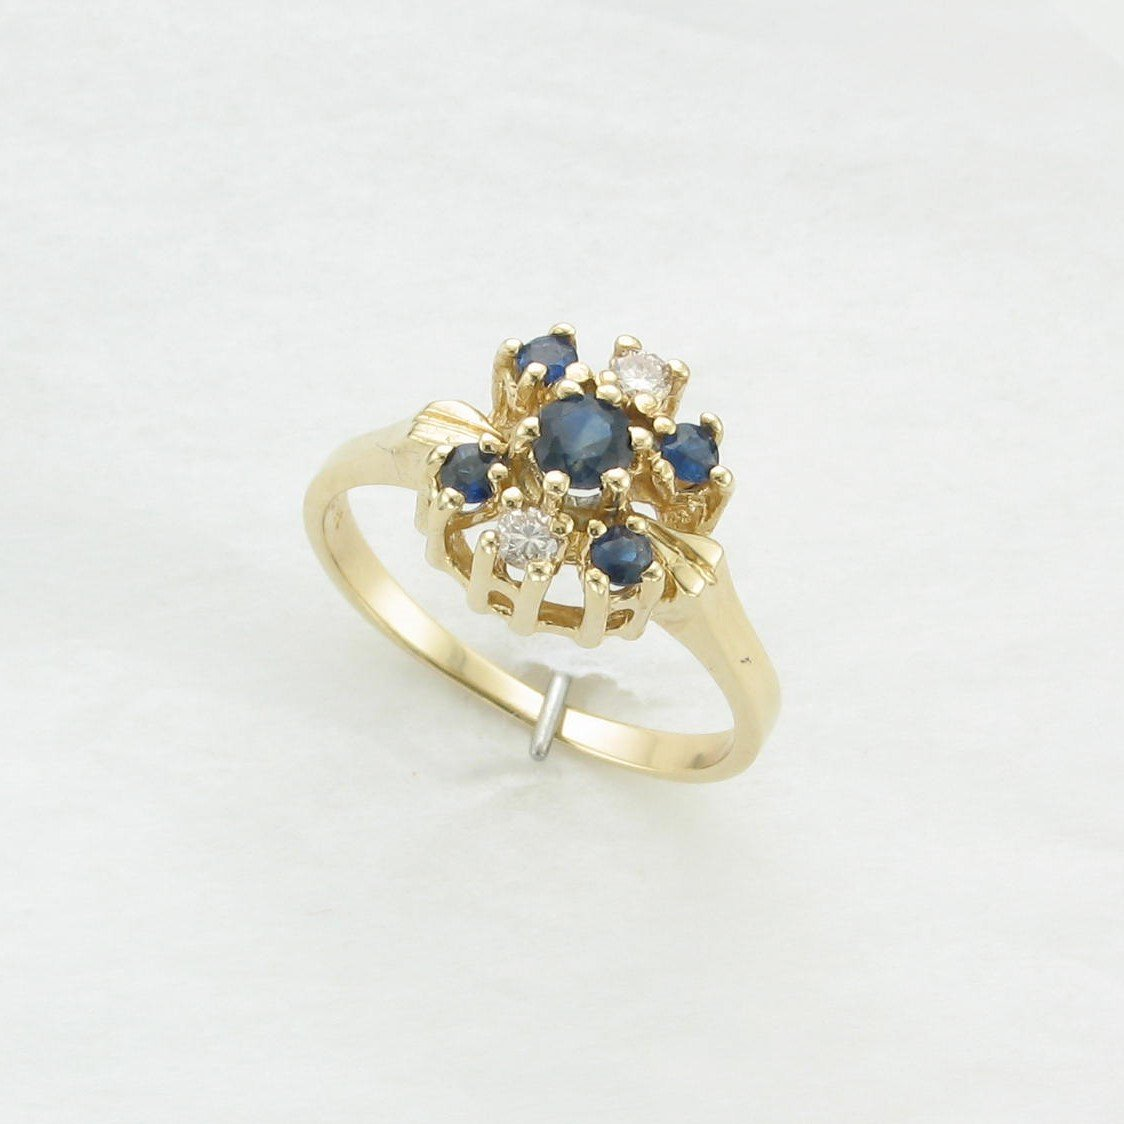 0.35 tcw Sapphire and Diamond Cluster Ring set in 14K Yellow Gold